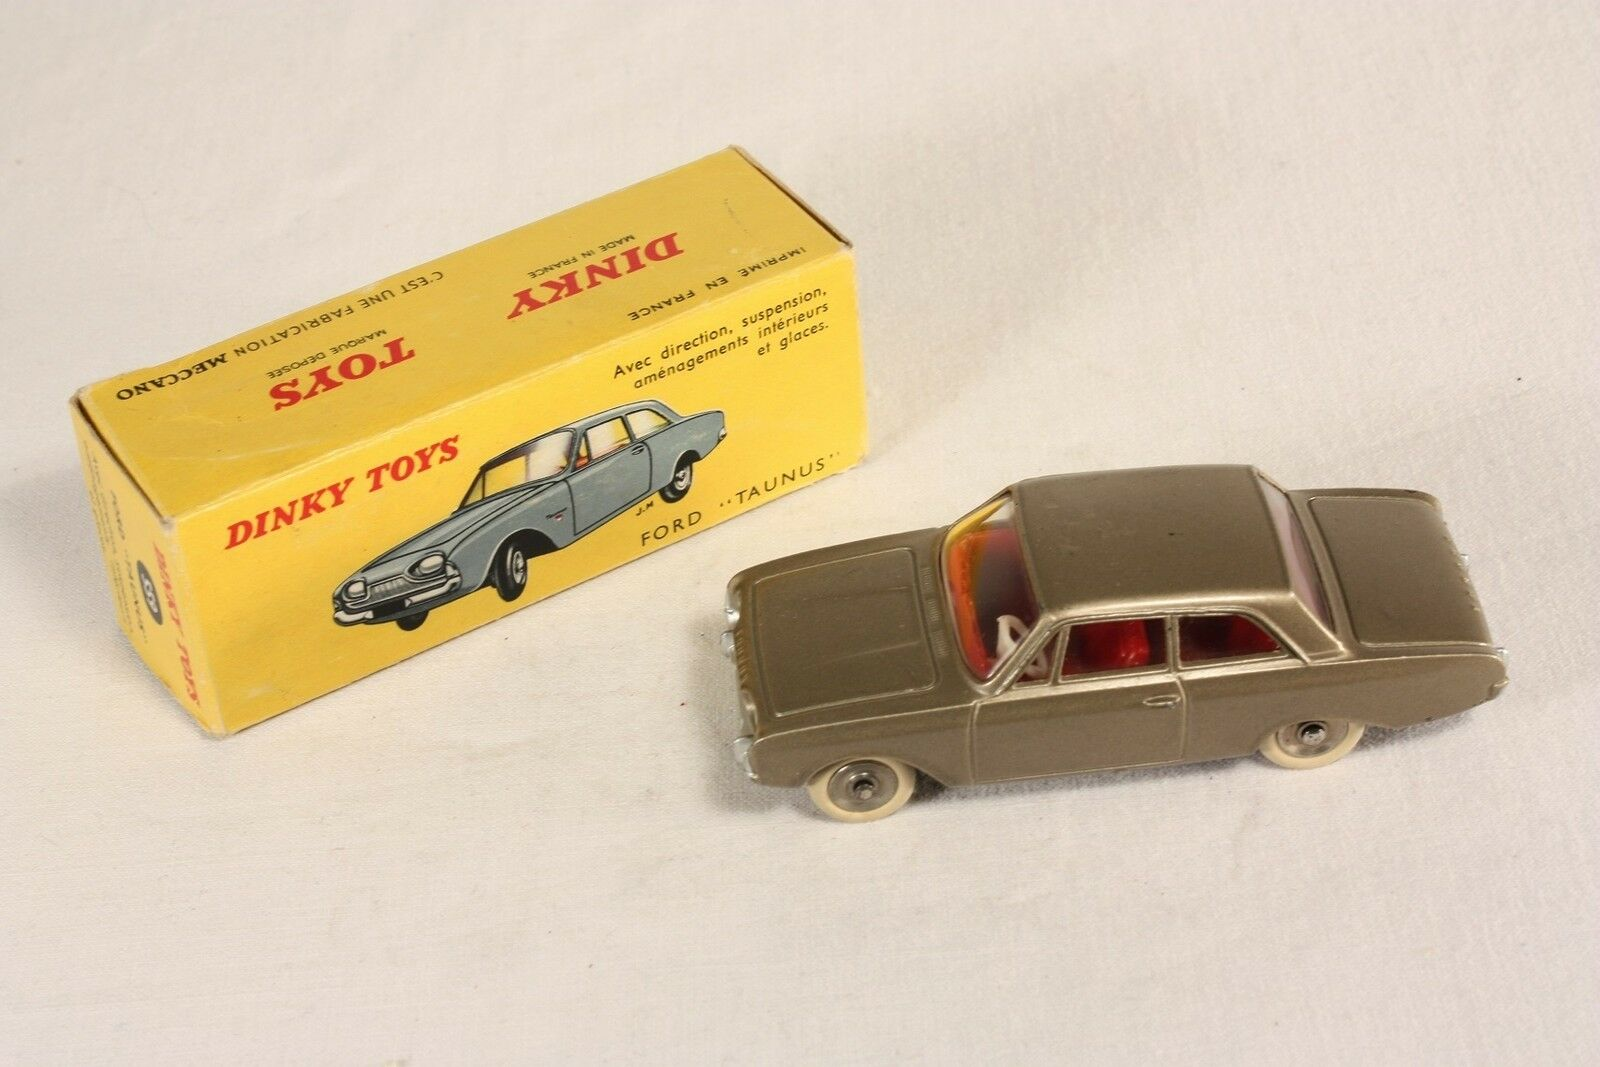 DINKY TOYS 559, Ford Taunus, Mint in Box #ab552